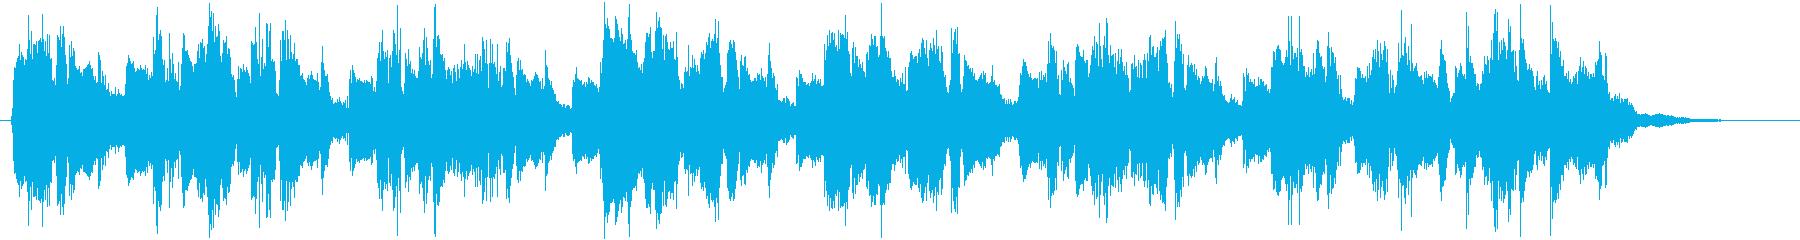 Radio jingle with a cyberpunk atmosphere's reproduced waveform